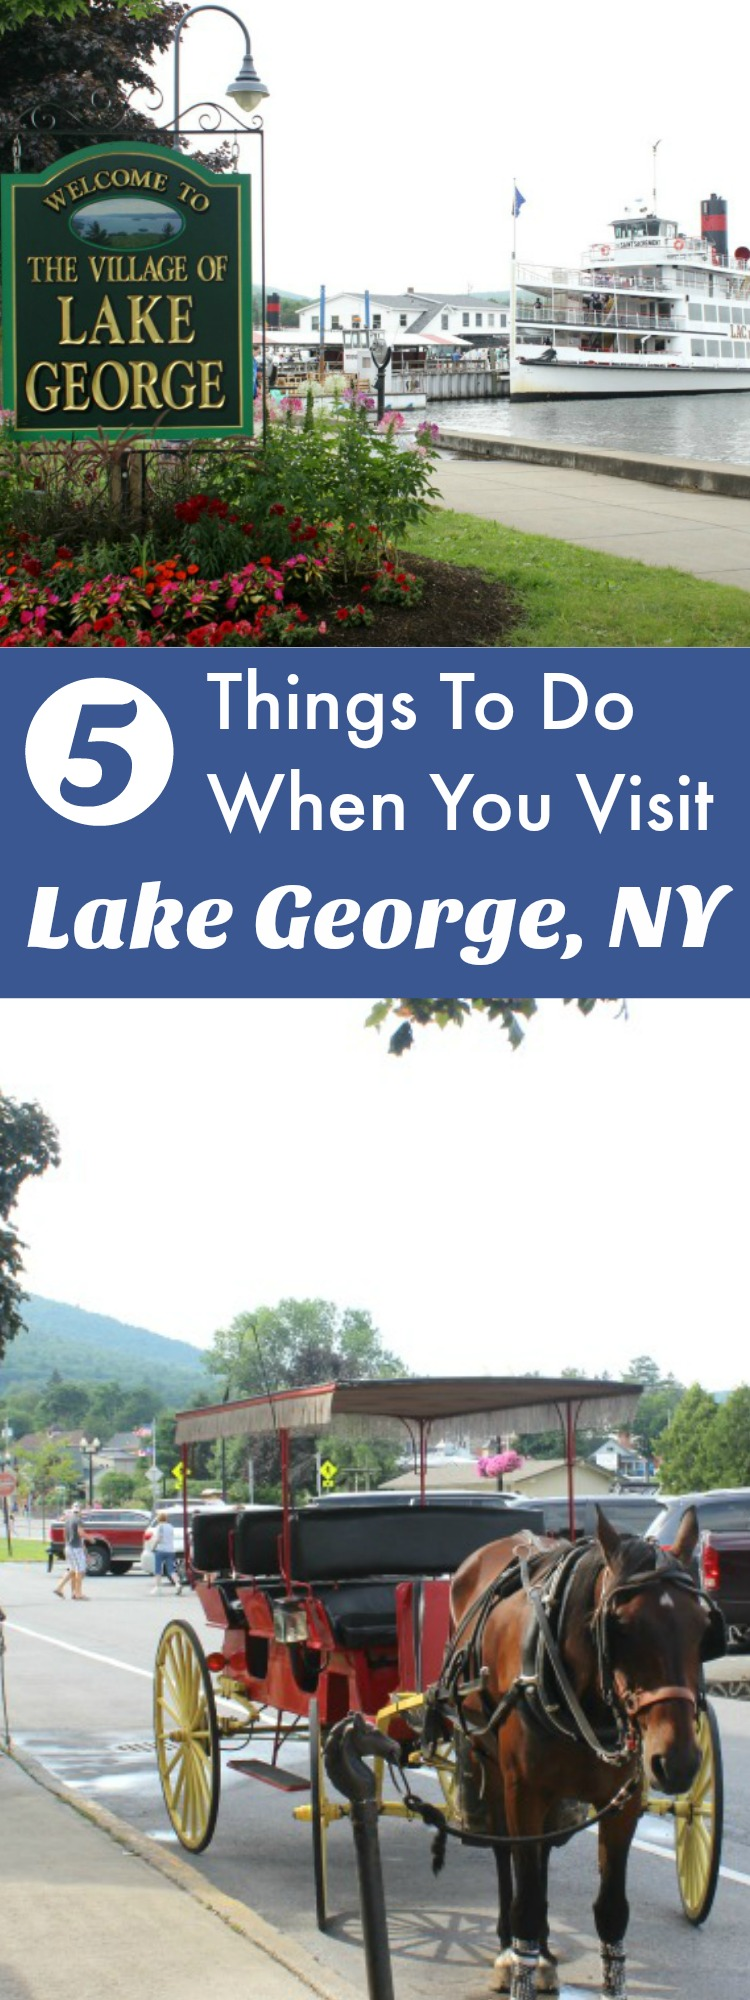 There are so many things to do in Lake George, NY that it makes a great vacation destination for the entire family.